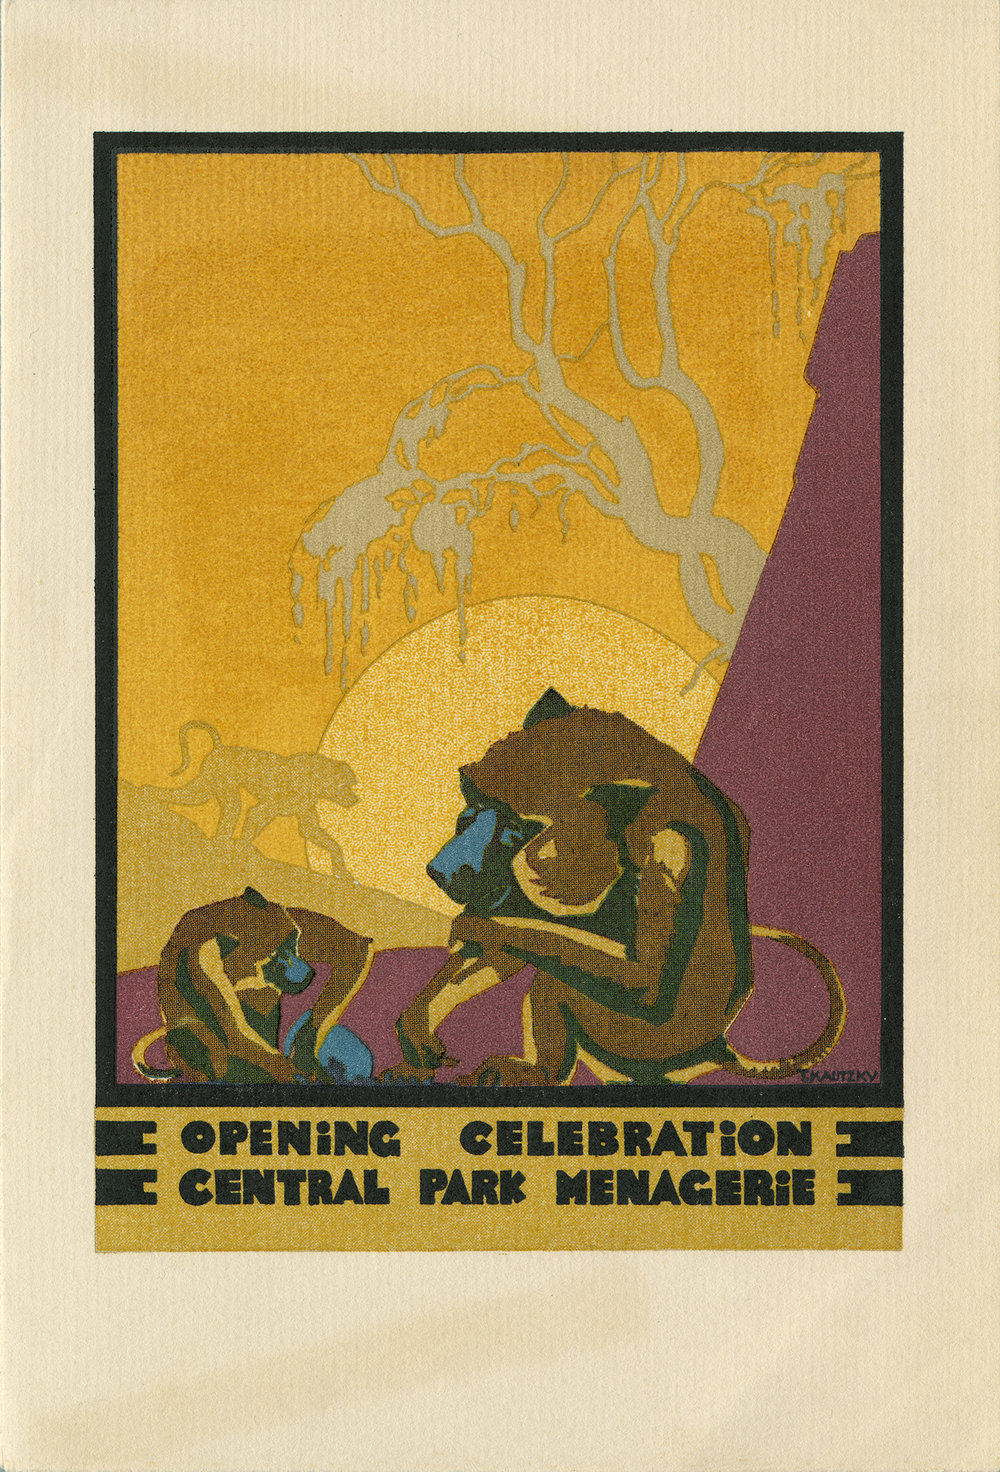 Invitation to the Menagerie in Central Park, 1934. Color half-tone on paper; artist unknown. Mayor LaGuardia Parks Department correspondence, NYC Municipal Archives.  Good design was a hallmark of Commissioner Moses' public works as evidenced by this 1934 invitation and during the Great Depression he could draw on a large pool of readily available talented architects and designers.